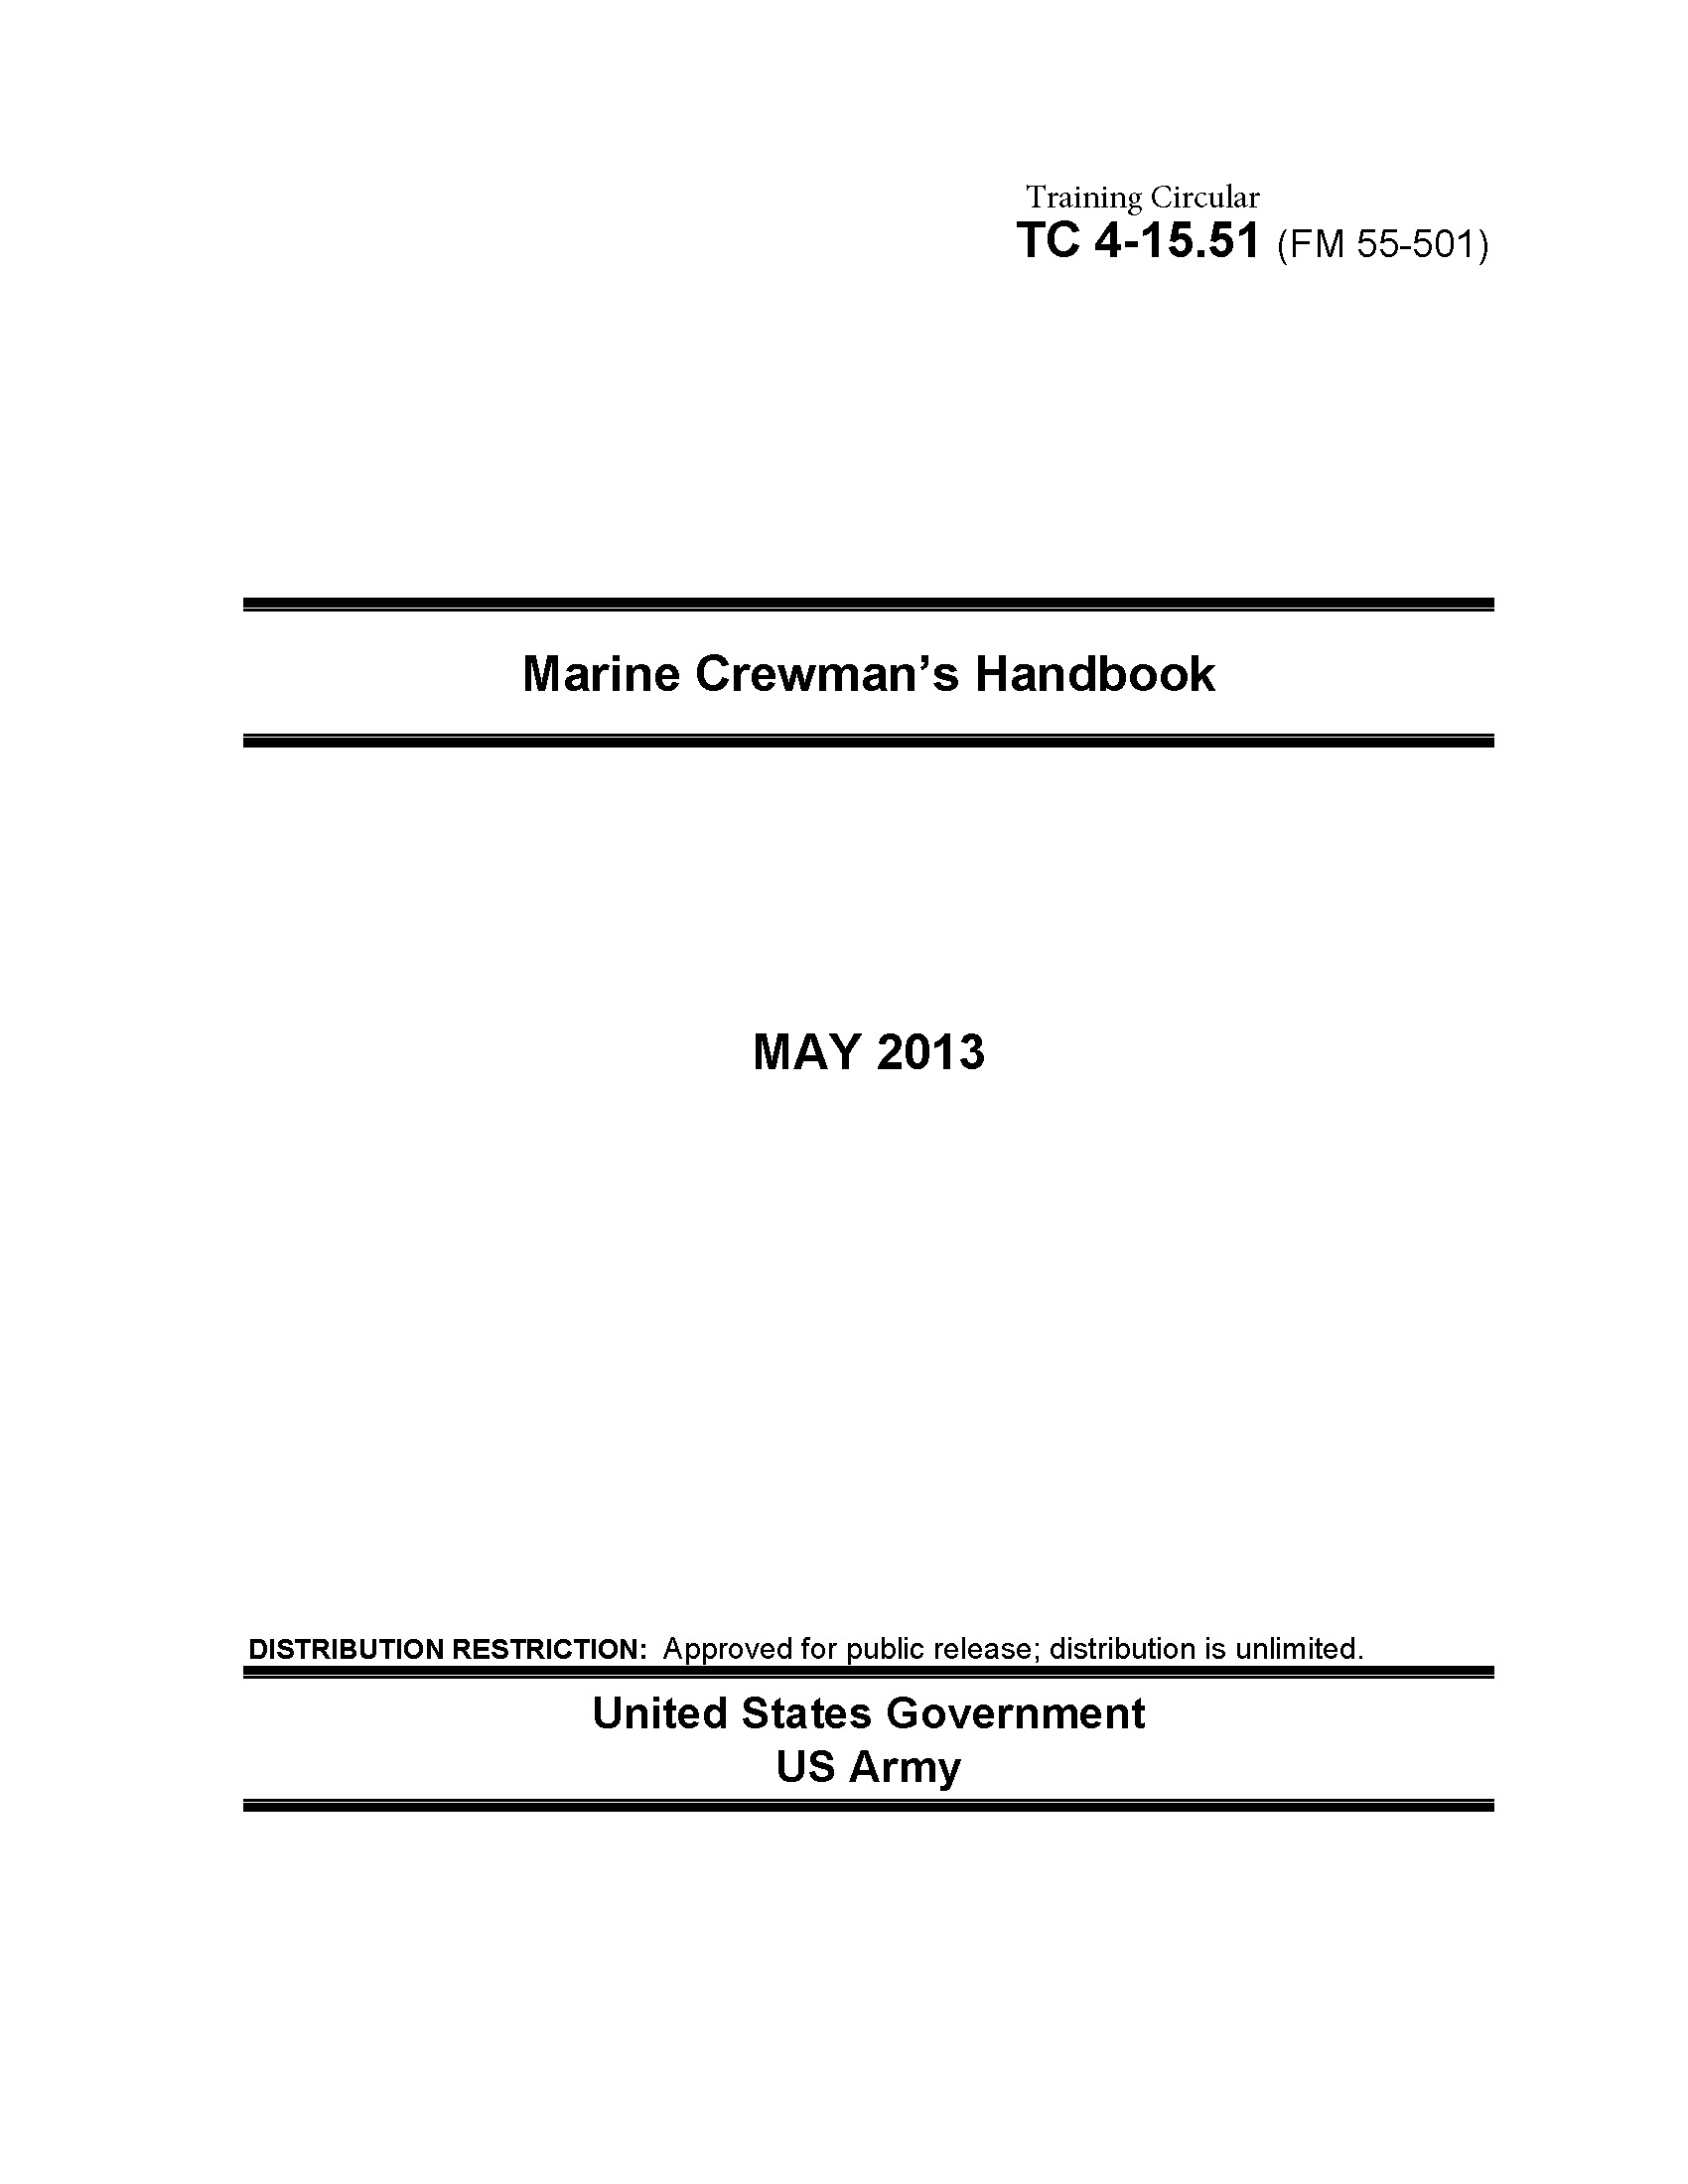 Training Circular TC 4-15.51 (FM 55-501) Marine Crewman's Handbook   May 2013